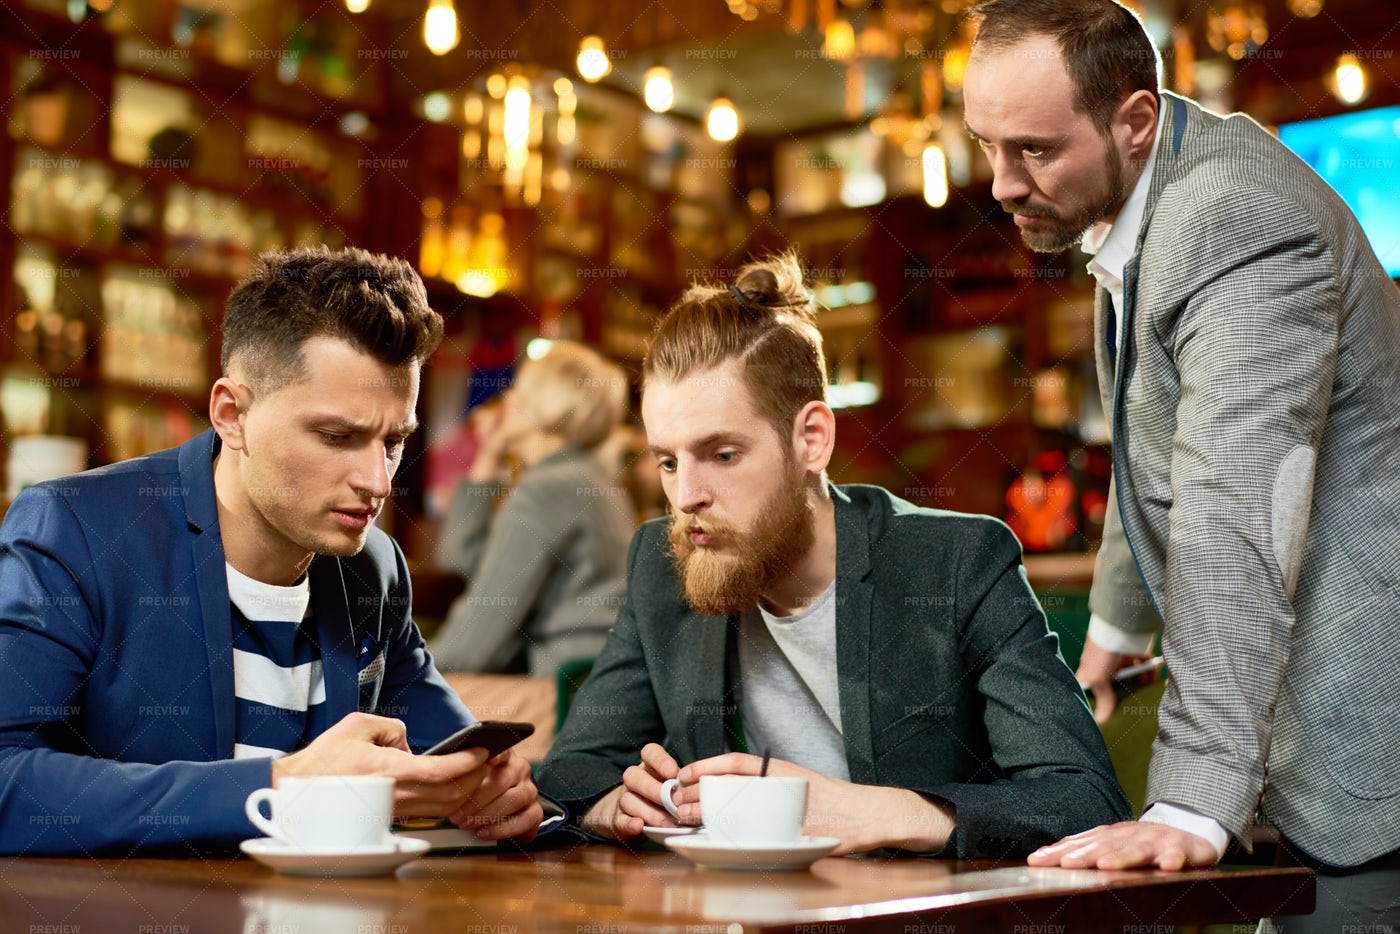 Informal Working Meeting With...: Stock Photos